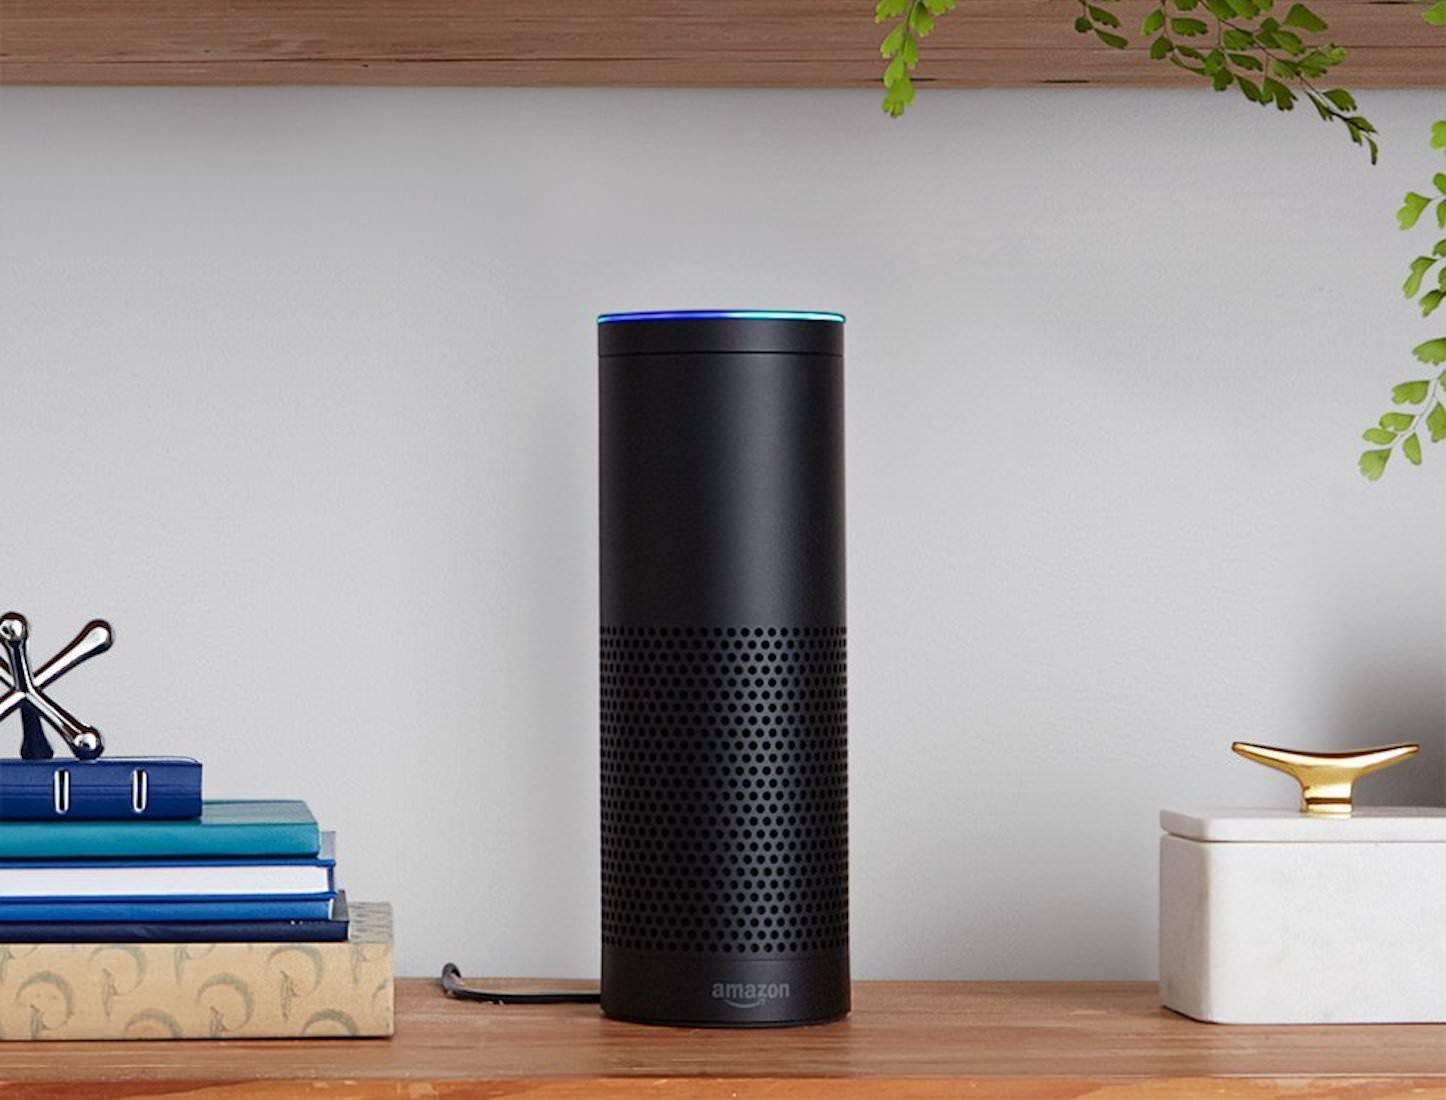 Alexa Amazon Echo Coming to Japan